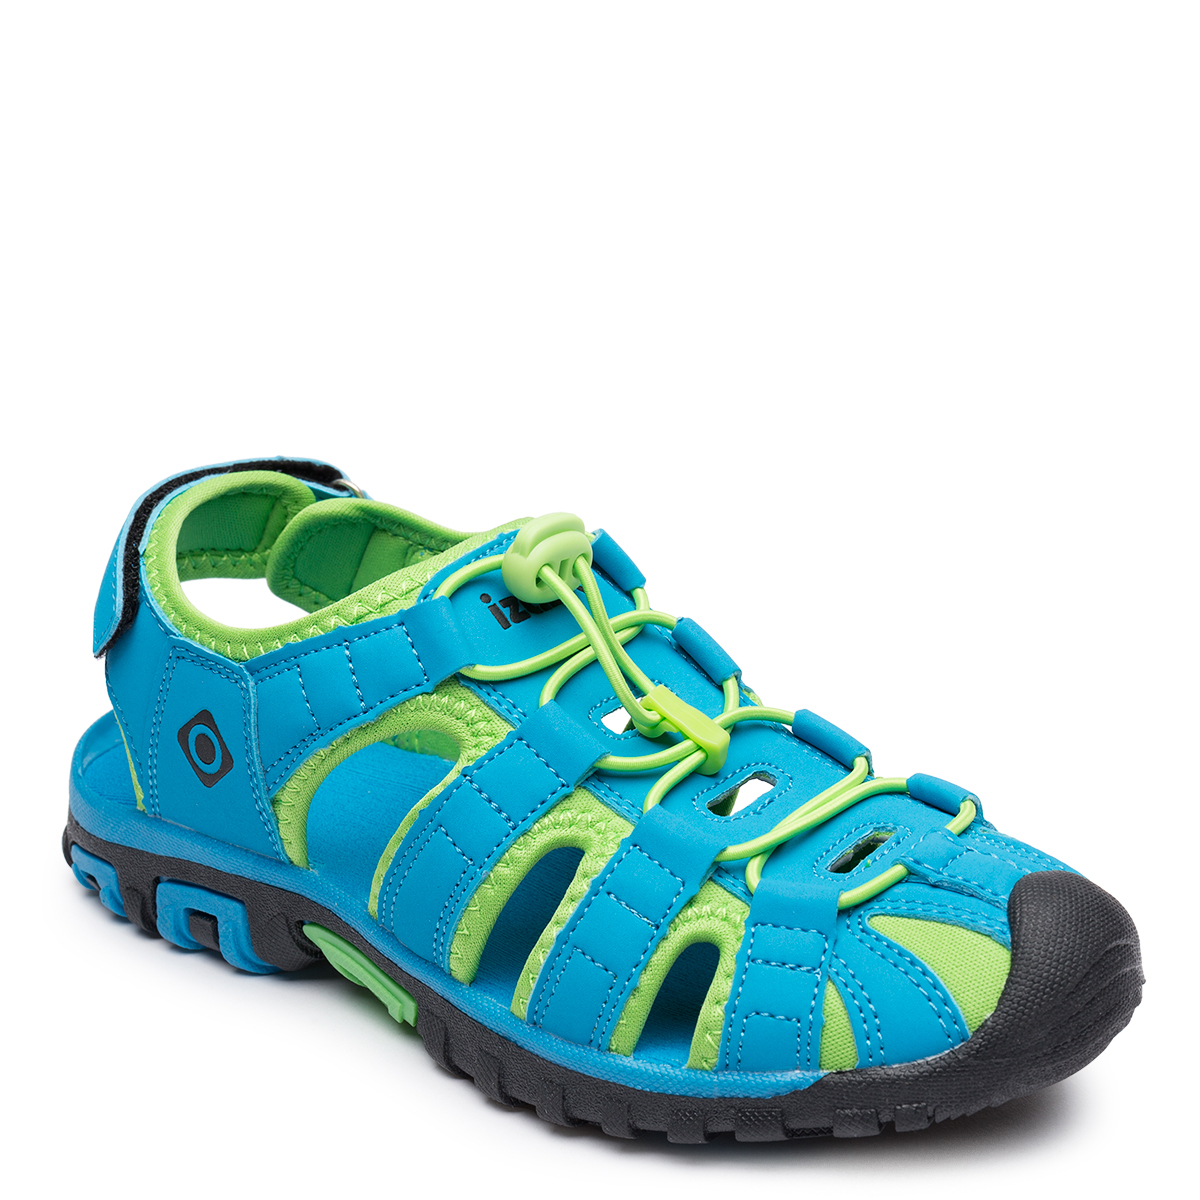 FROSTY KIDS SANDALS TURQUOISE